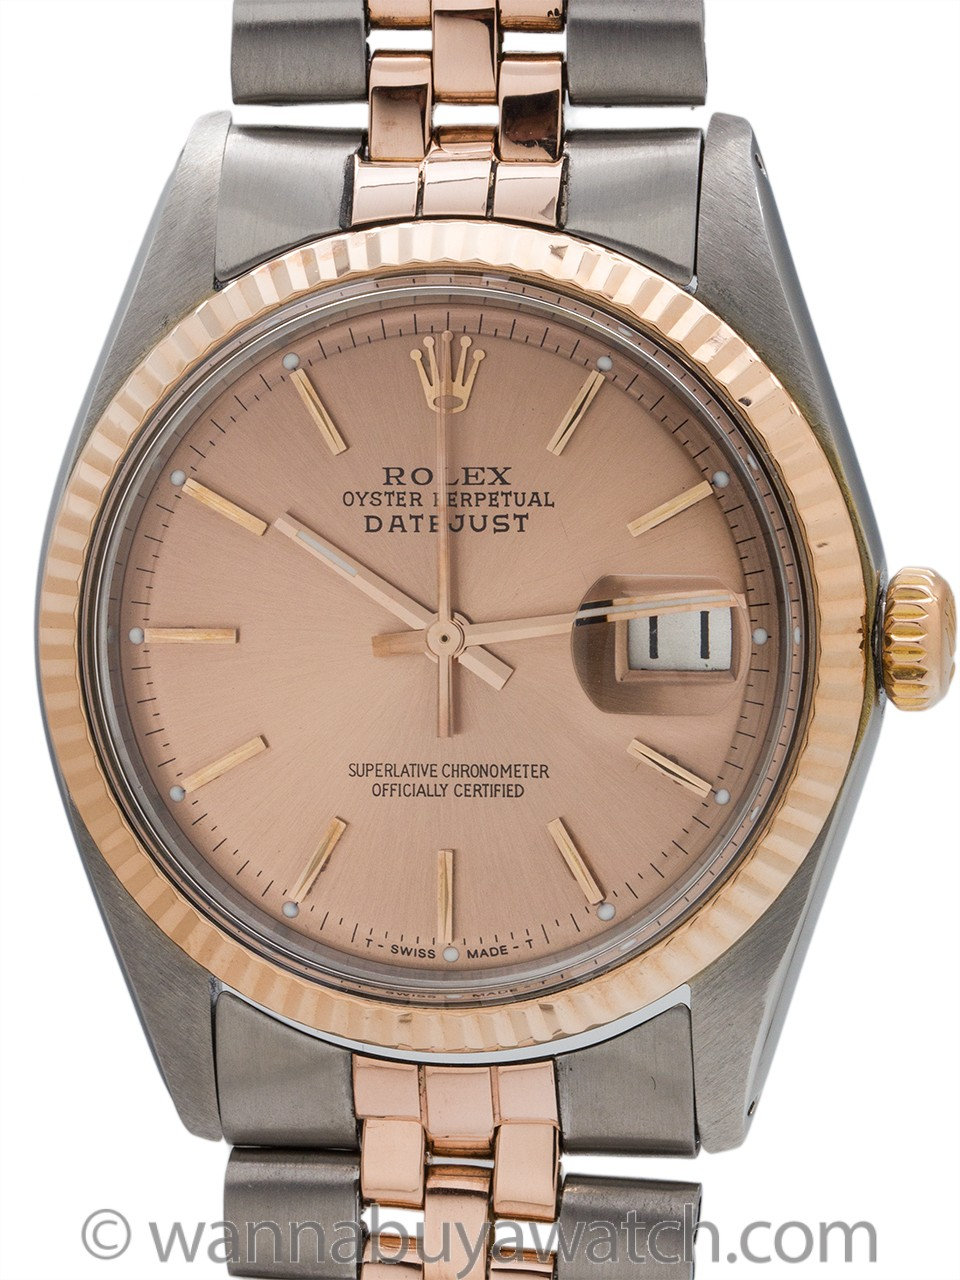 Rolex SS/14K Rose Gold Datejust ref 1601 circa 1974